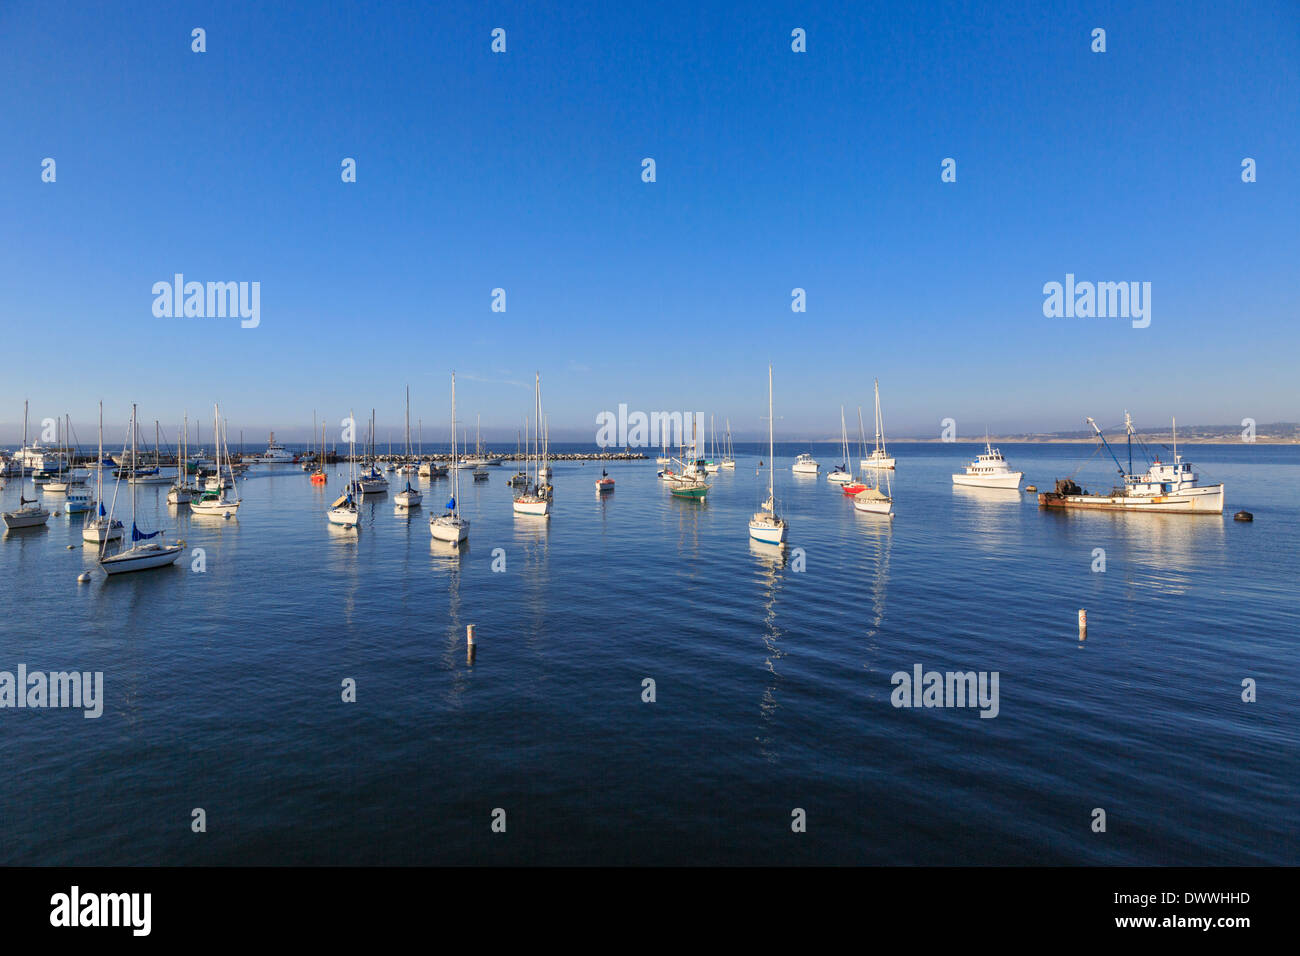 Monterey Bay marina with commercial fishing and recreational sailing boats. - Stock Image